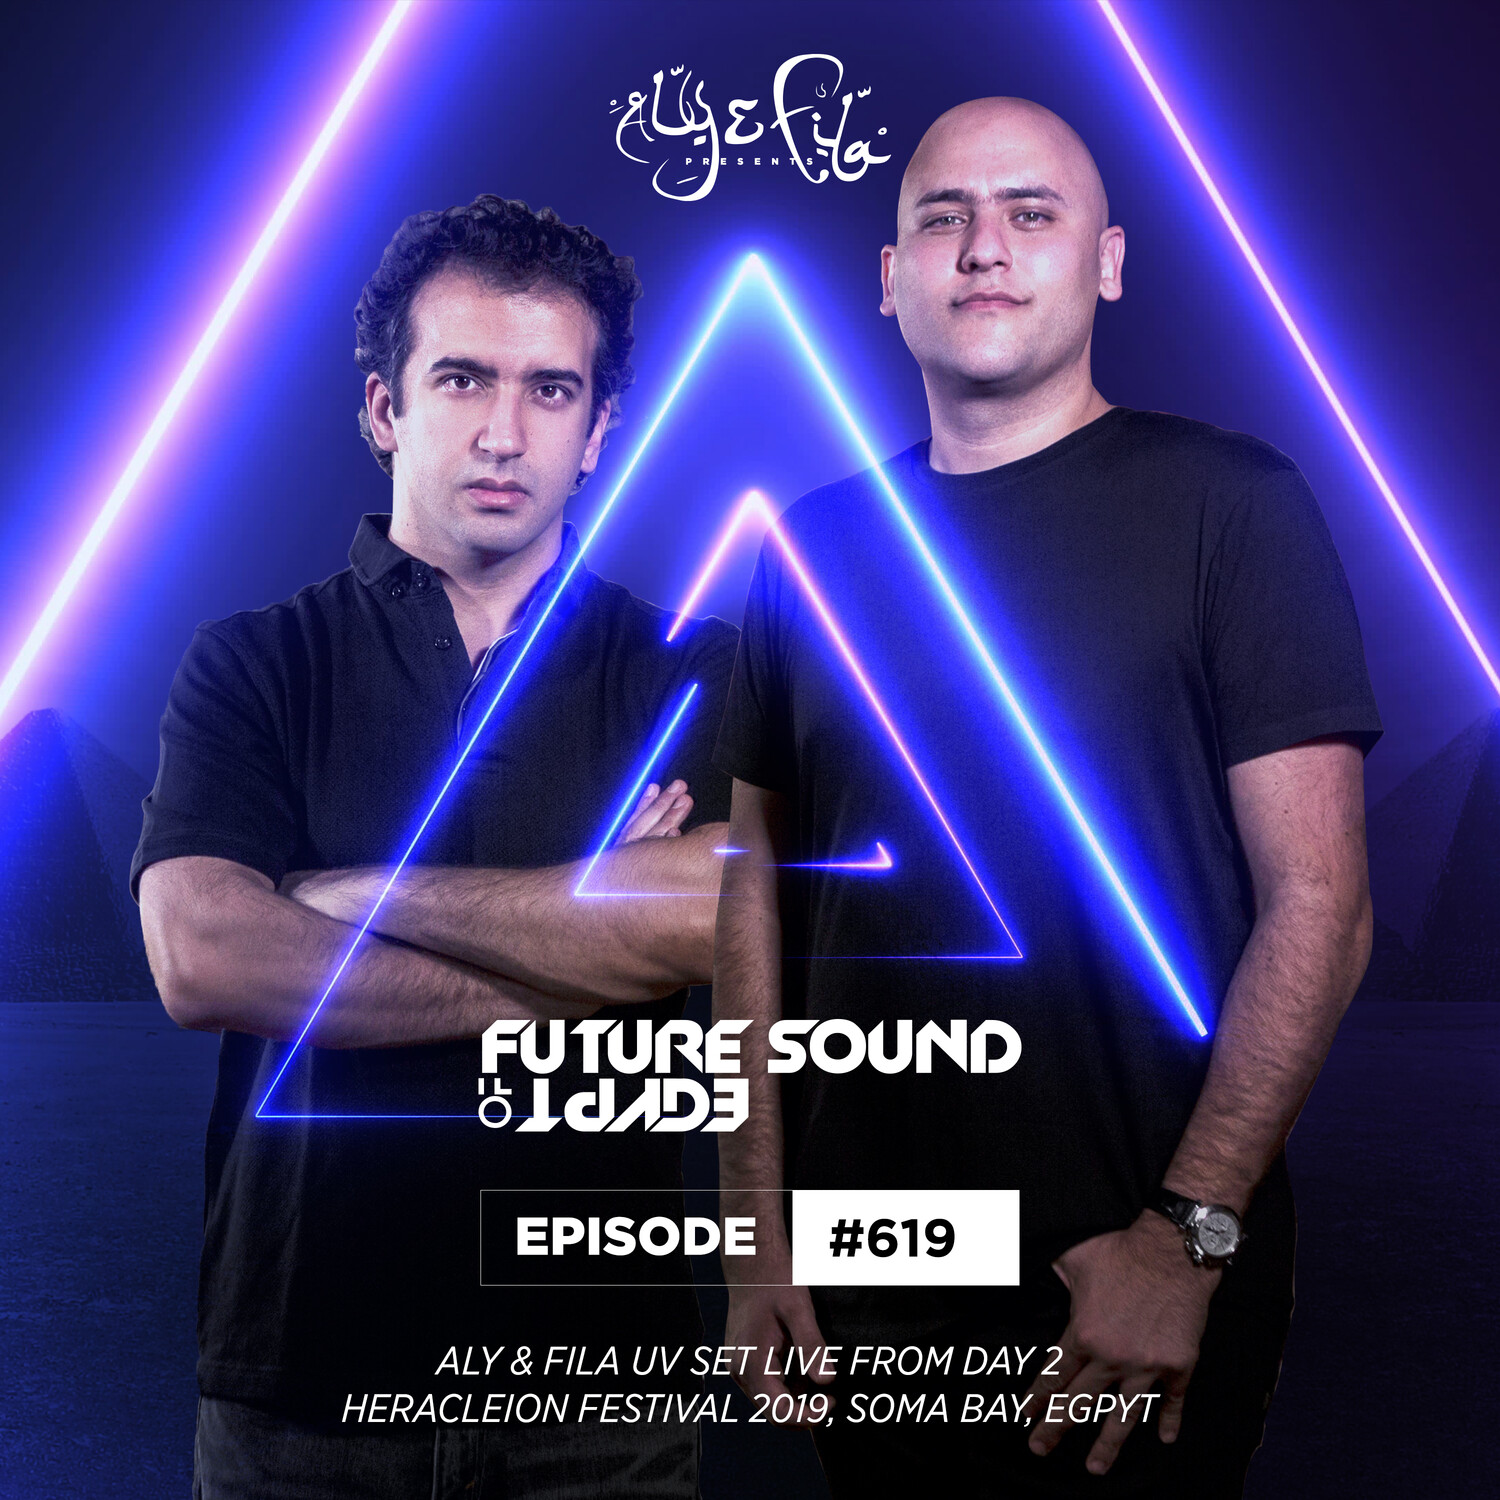 Aly & Fila — Future Sound of Egypt 619 (UV Set Live From Day 2 Heracleion Festival 2019)